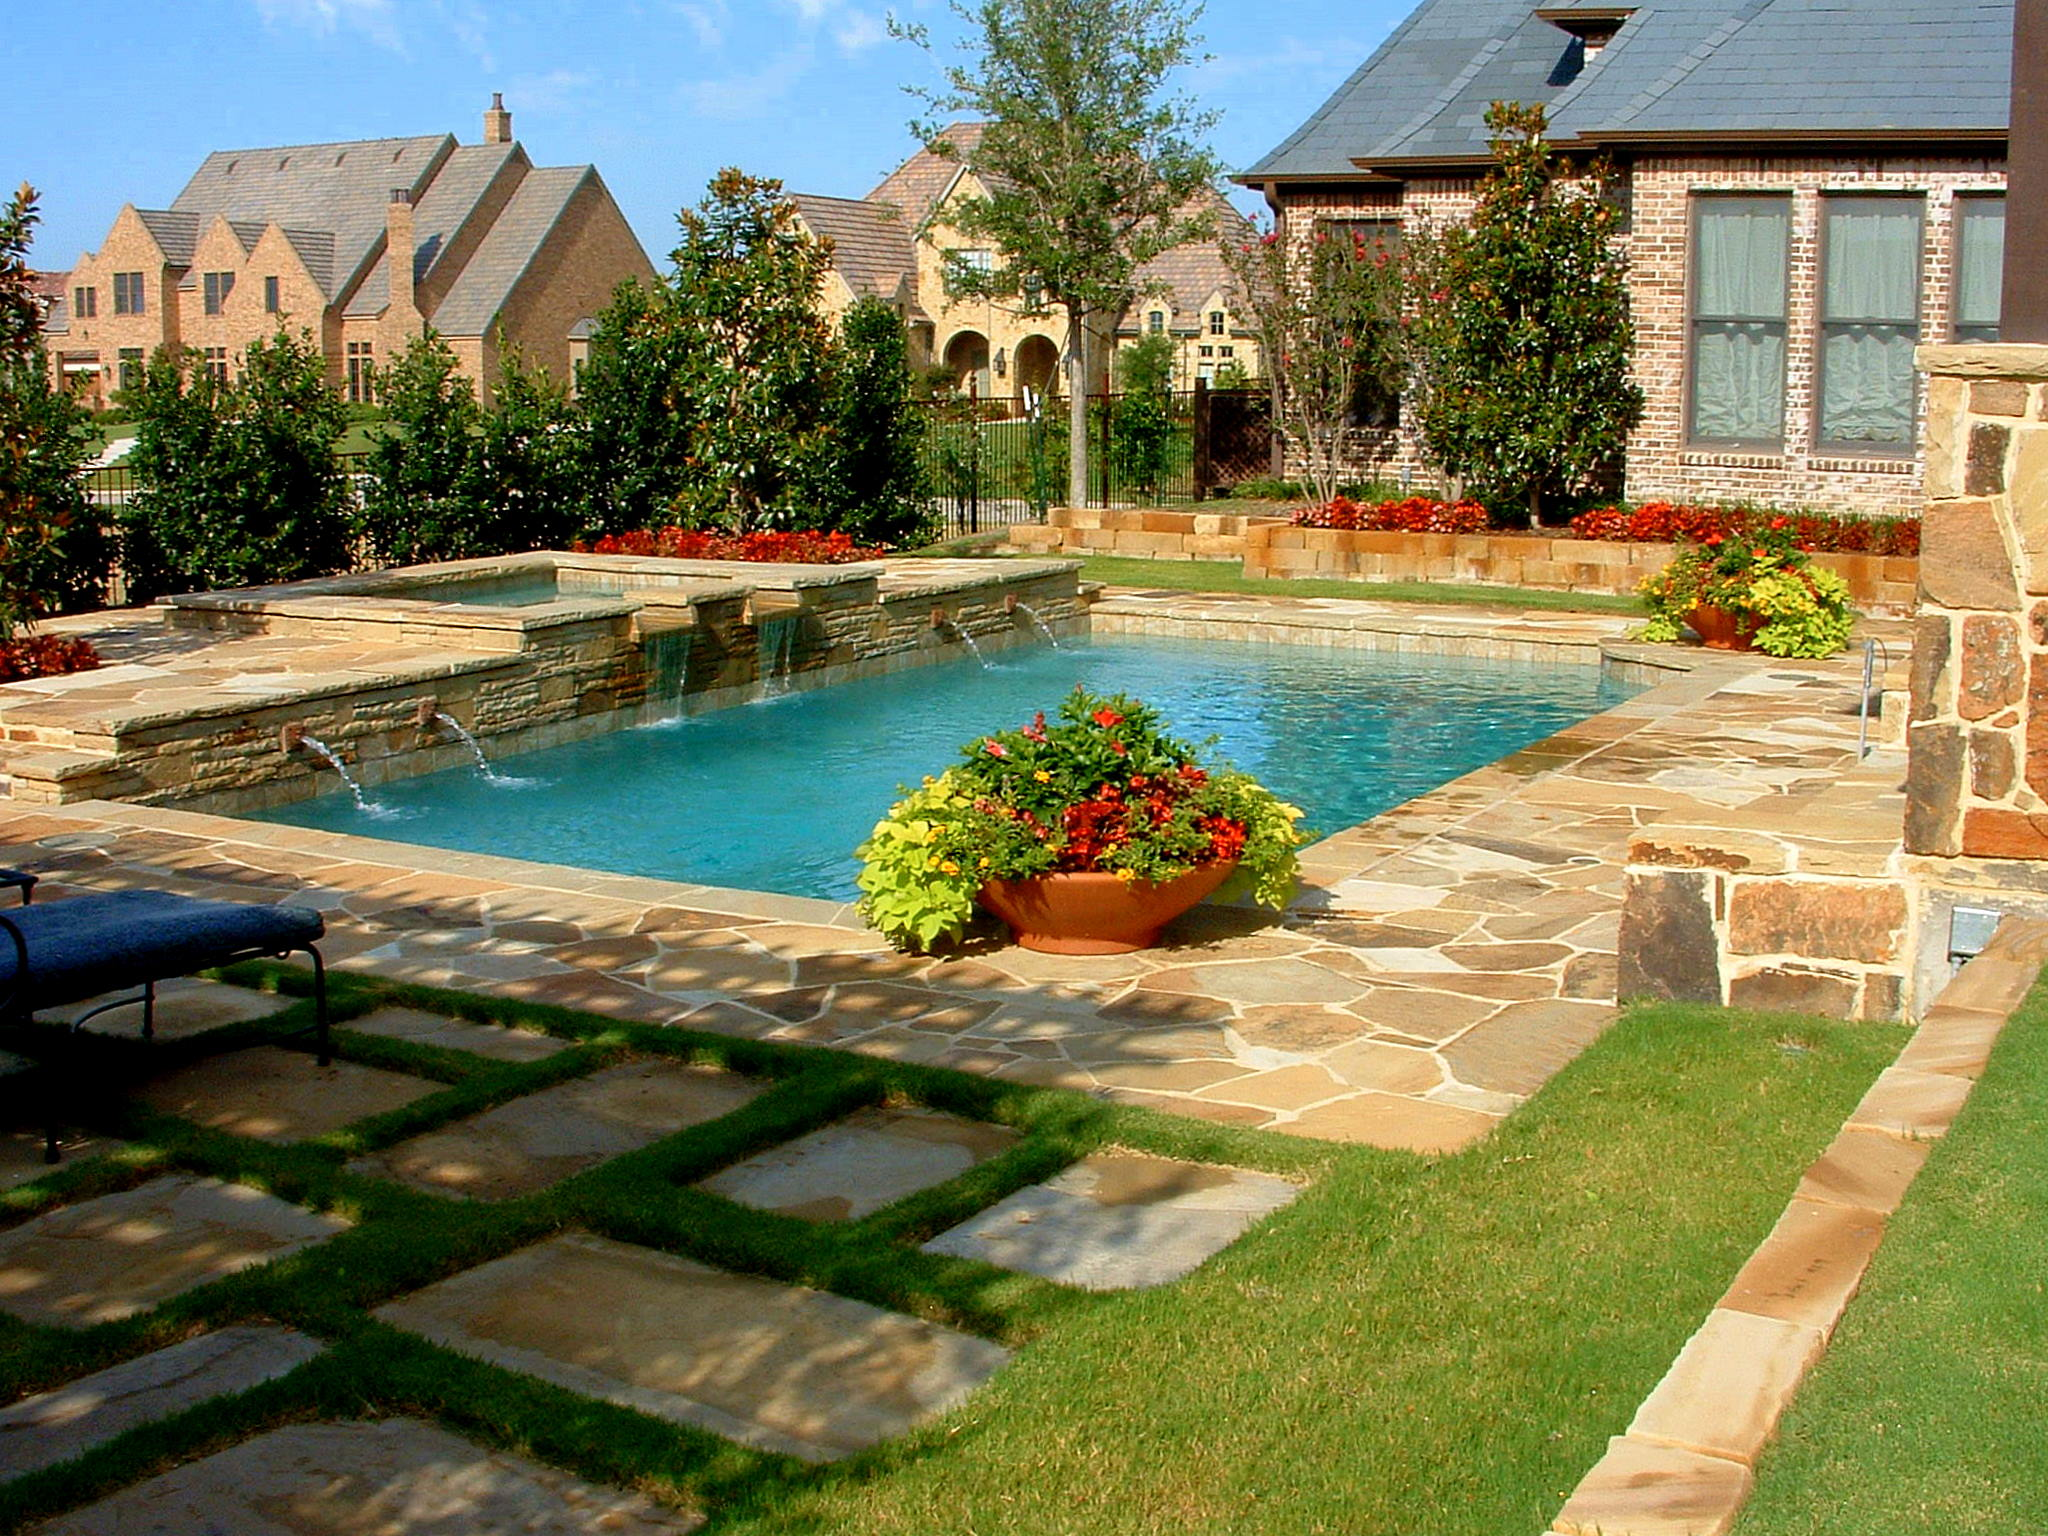 Backyard landscaping ideas swimming pool design for Pool design sloped yard